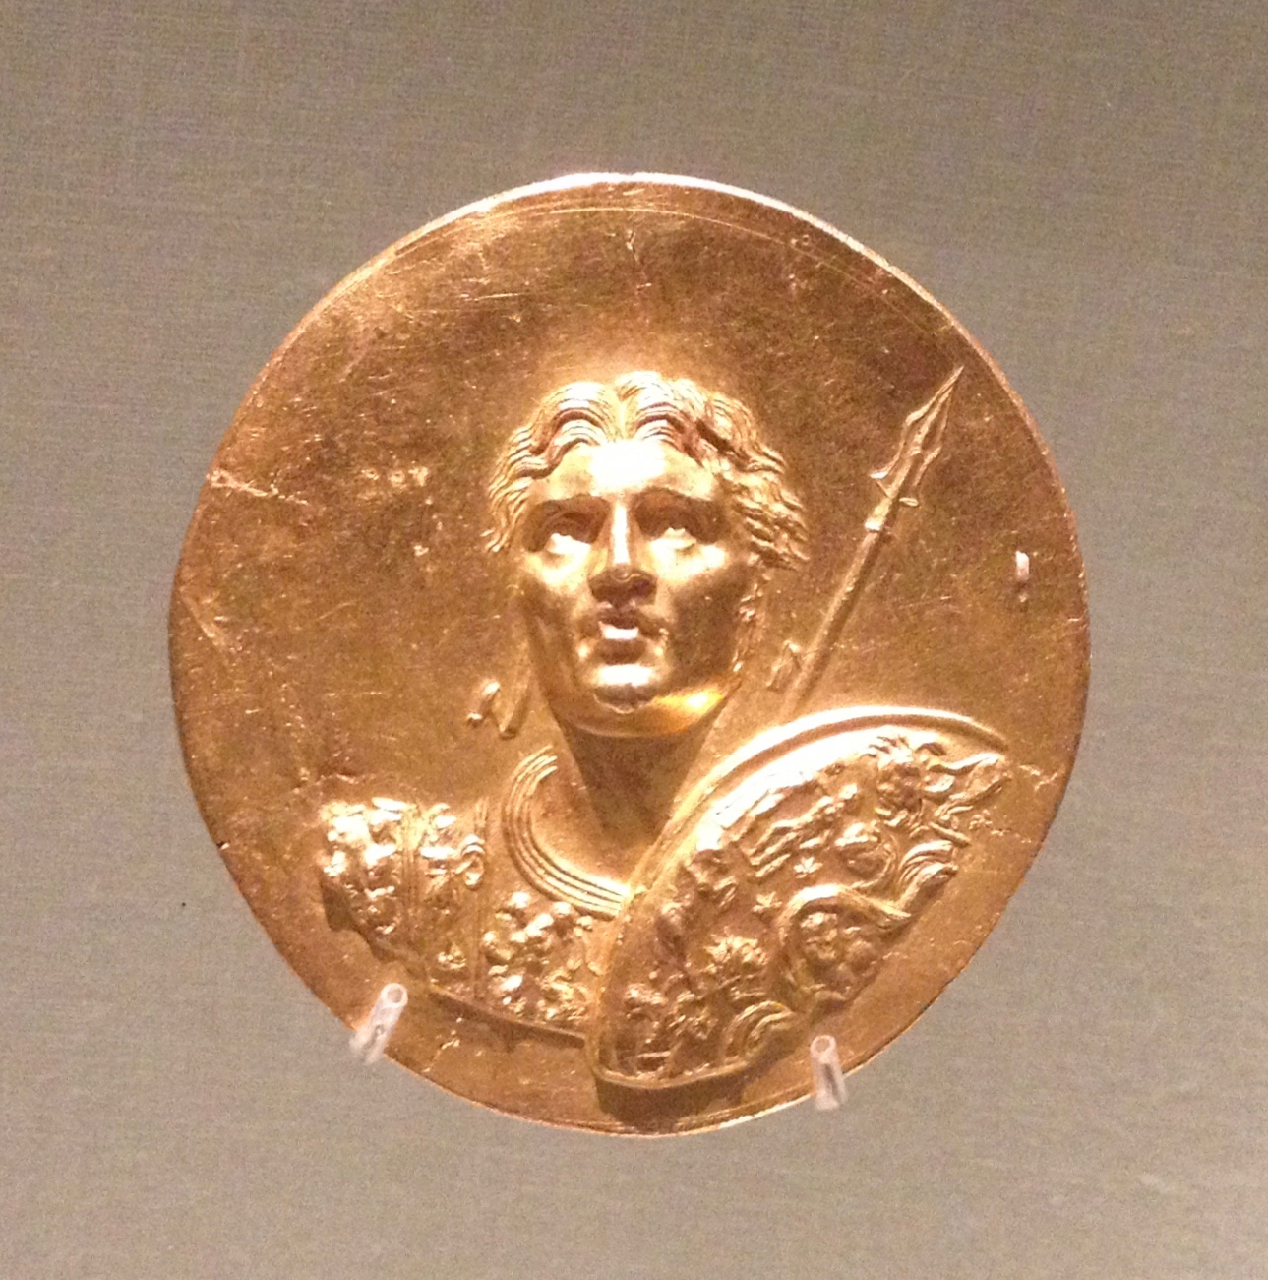 Memorial coin issued for the  Alexandreia  Games in Macedon during Roman times, sometime between 218 and 250 A.D.  Instead of the usual profile view, Alexander faces us while looking forward and upward.  Out of the 20 surviving coins, with various designs, Gulbenkian got eleven, and The Walters got three.  The games collectors play.  iPhone 4S, 19 October.